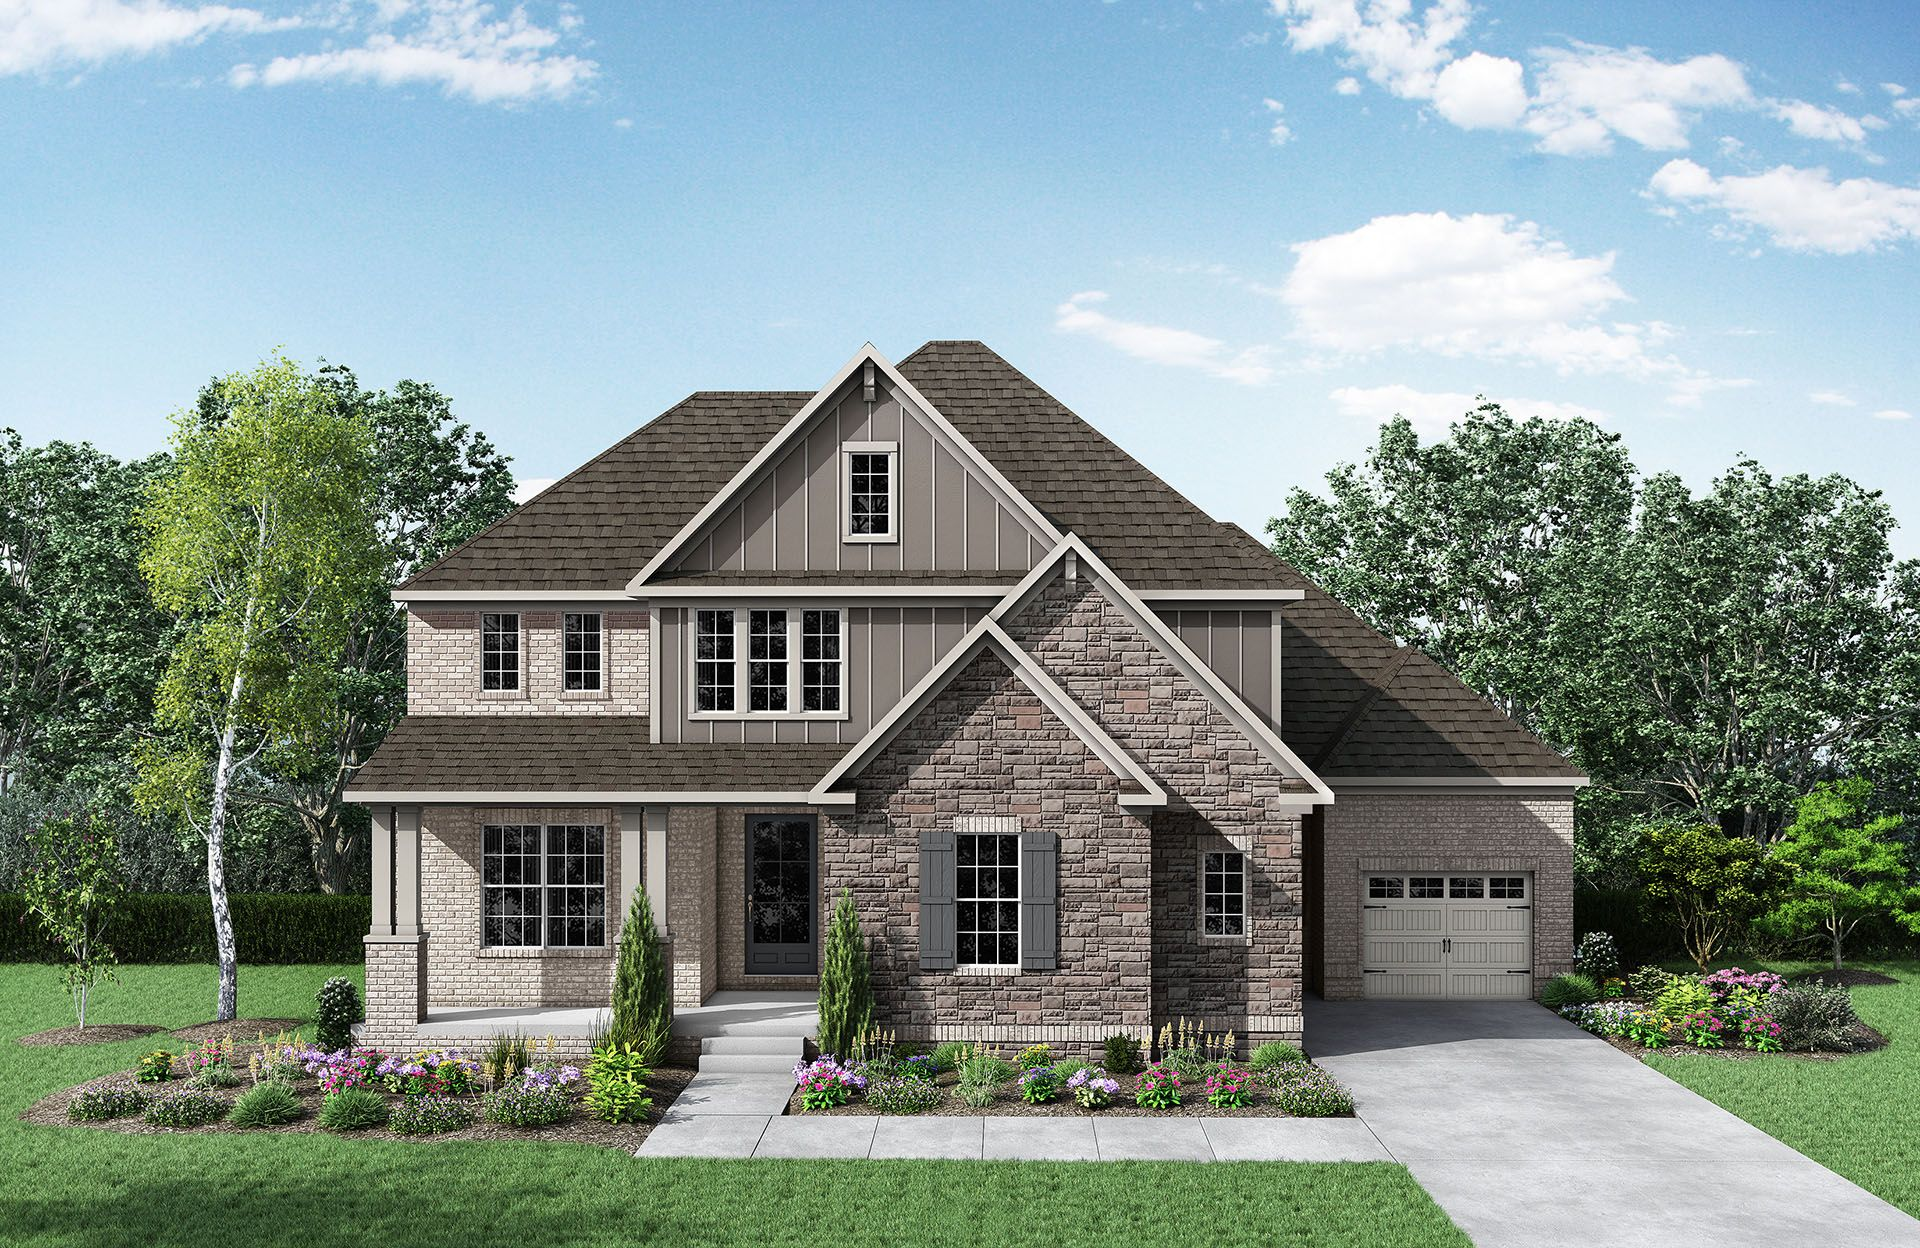 Single Family for Active at Oakdale 143 Telfair Lane Nolensville, Tennessee 37135 United States